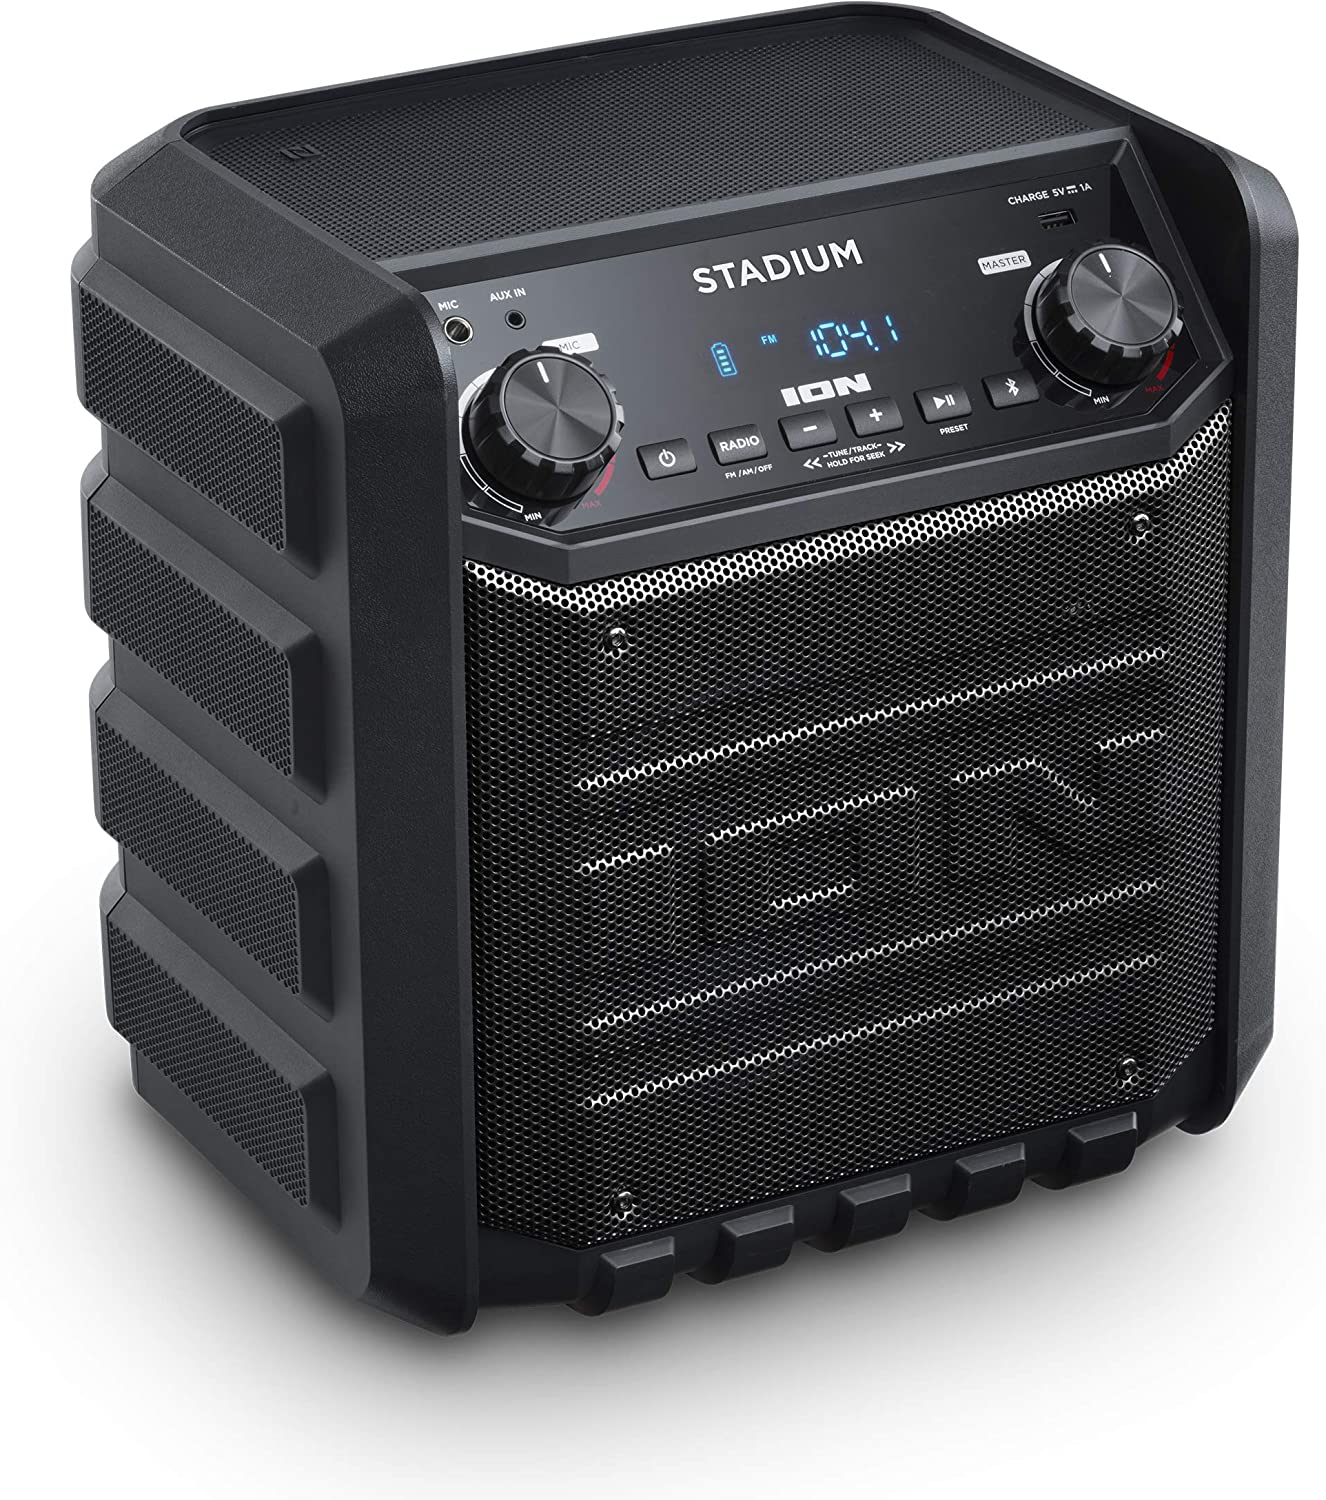 ION IPA8S Stadium Bluetooth Tailgate Speaker 8 Watt PortableRechargeable  AM/FM Includes Mic and Cable Black